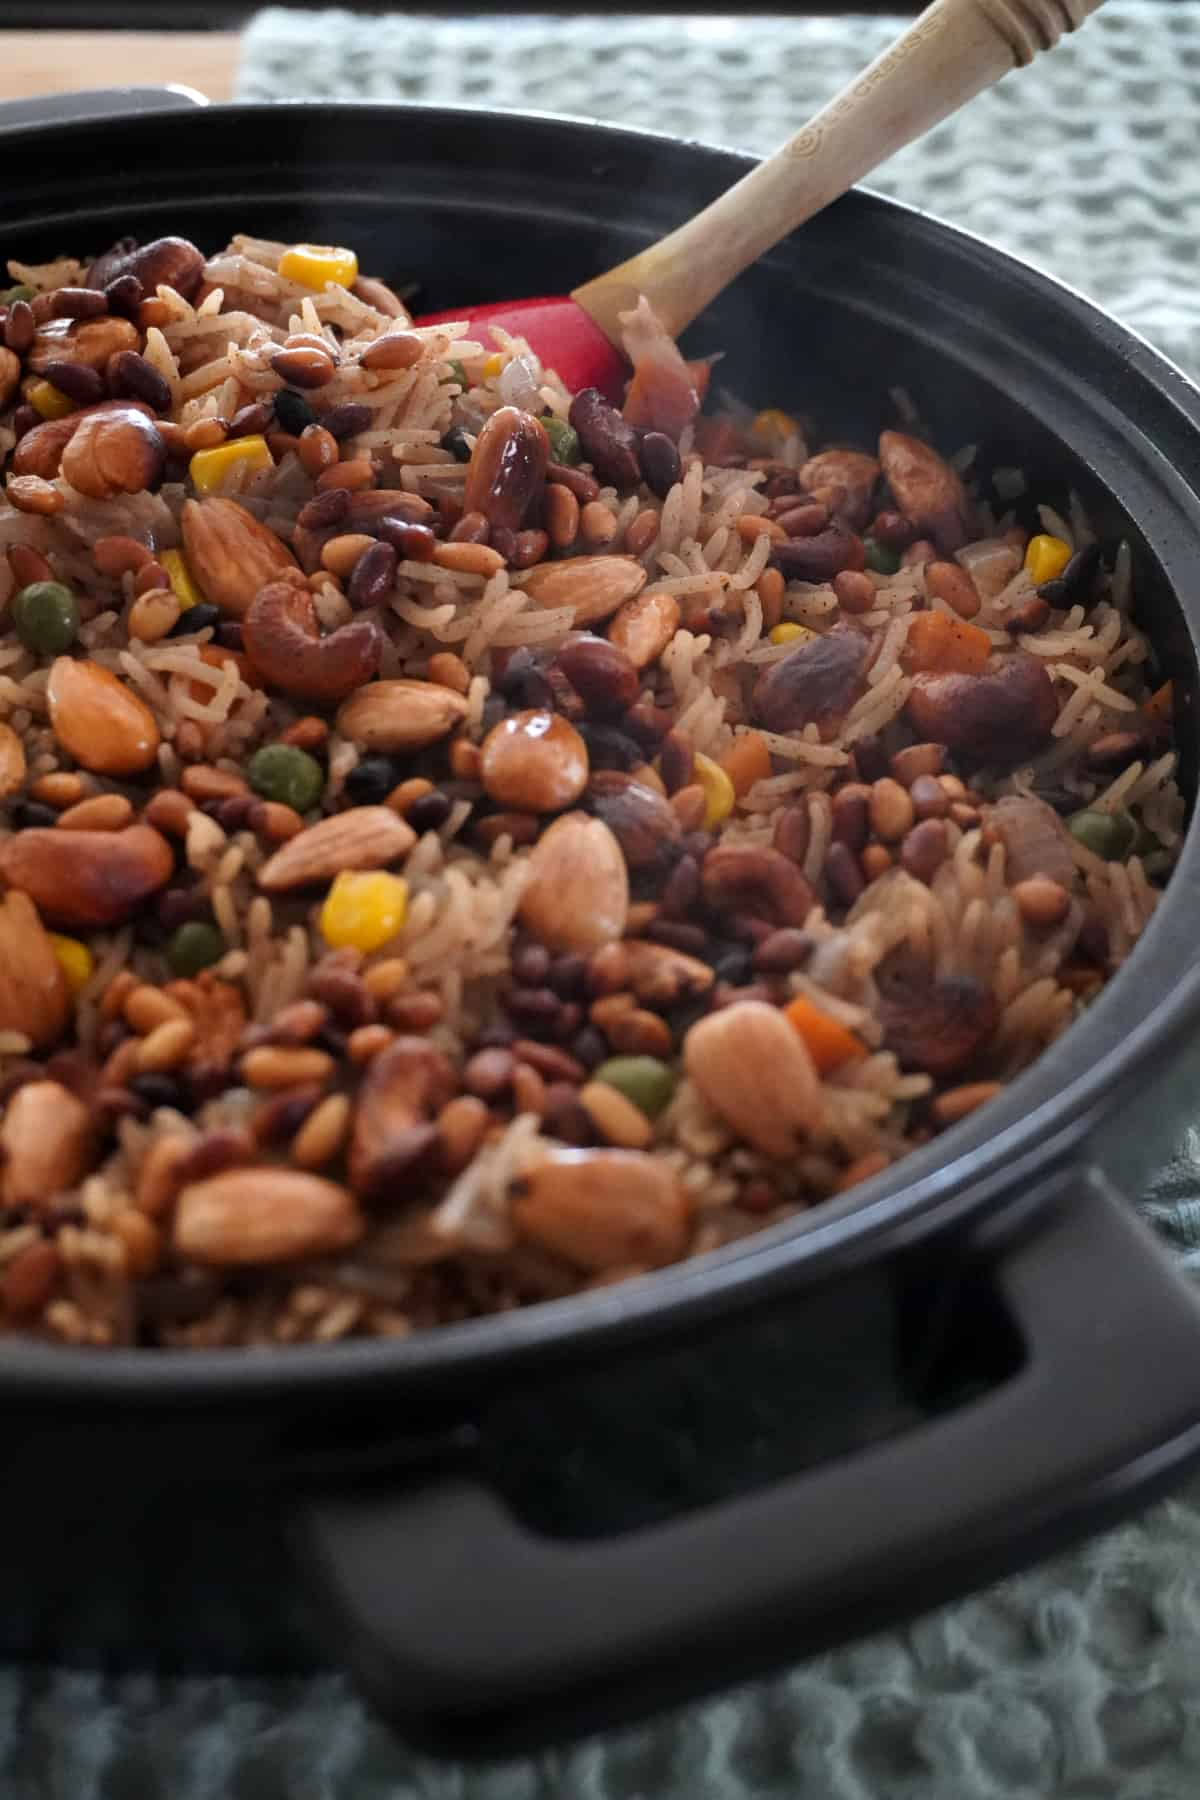 Vegan Lebanese Rice served with nuts in a black dish